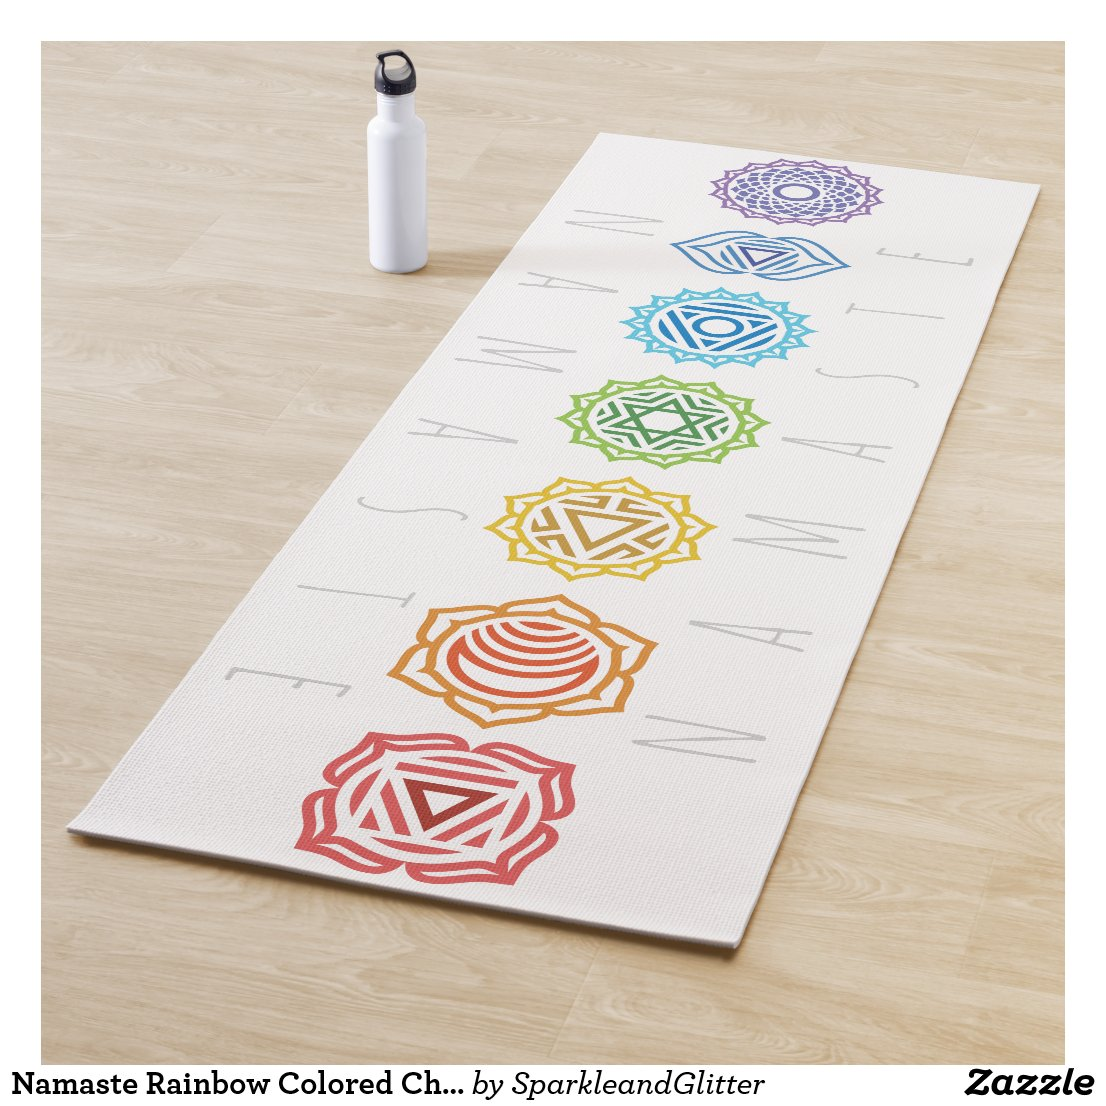 Namaste Rainbow Colored Chakras Yoga Mat